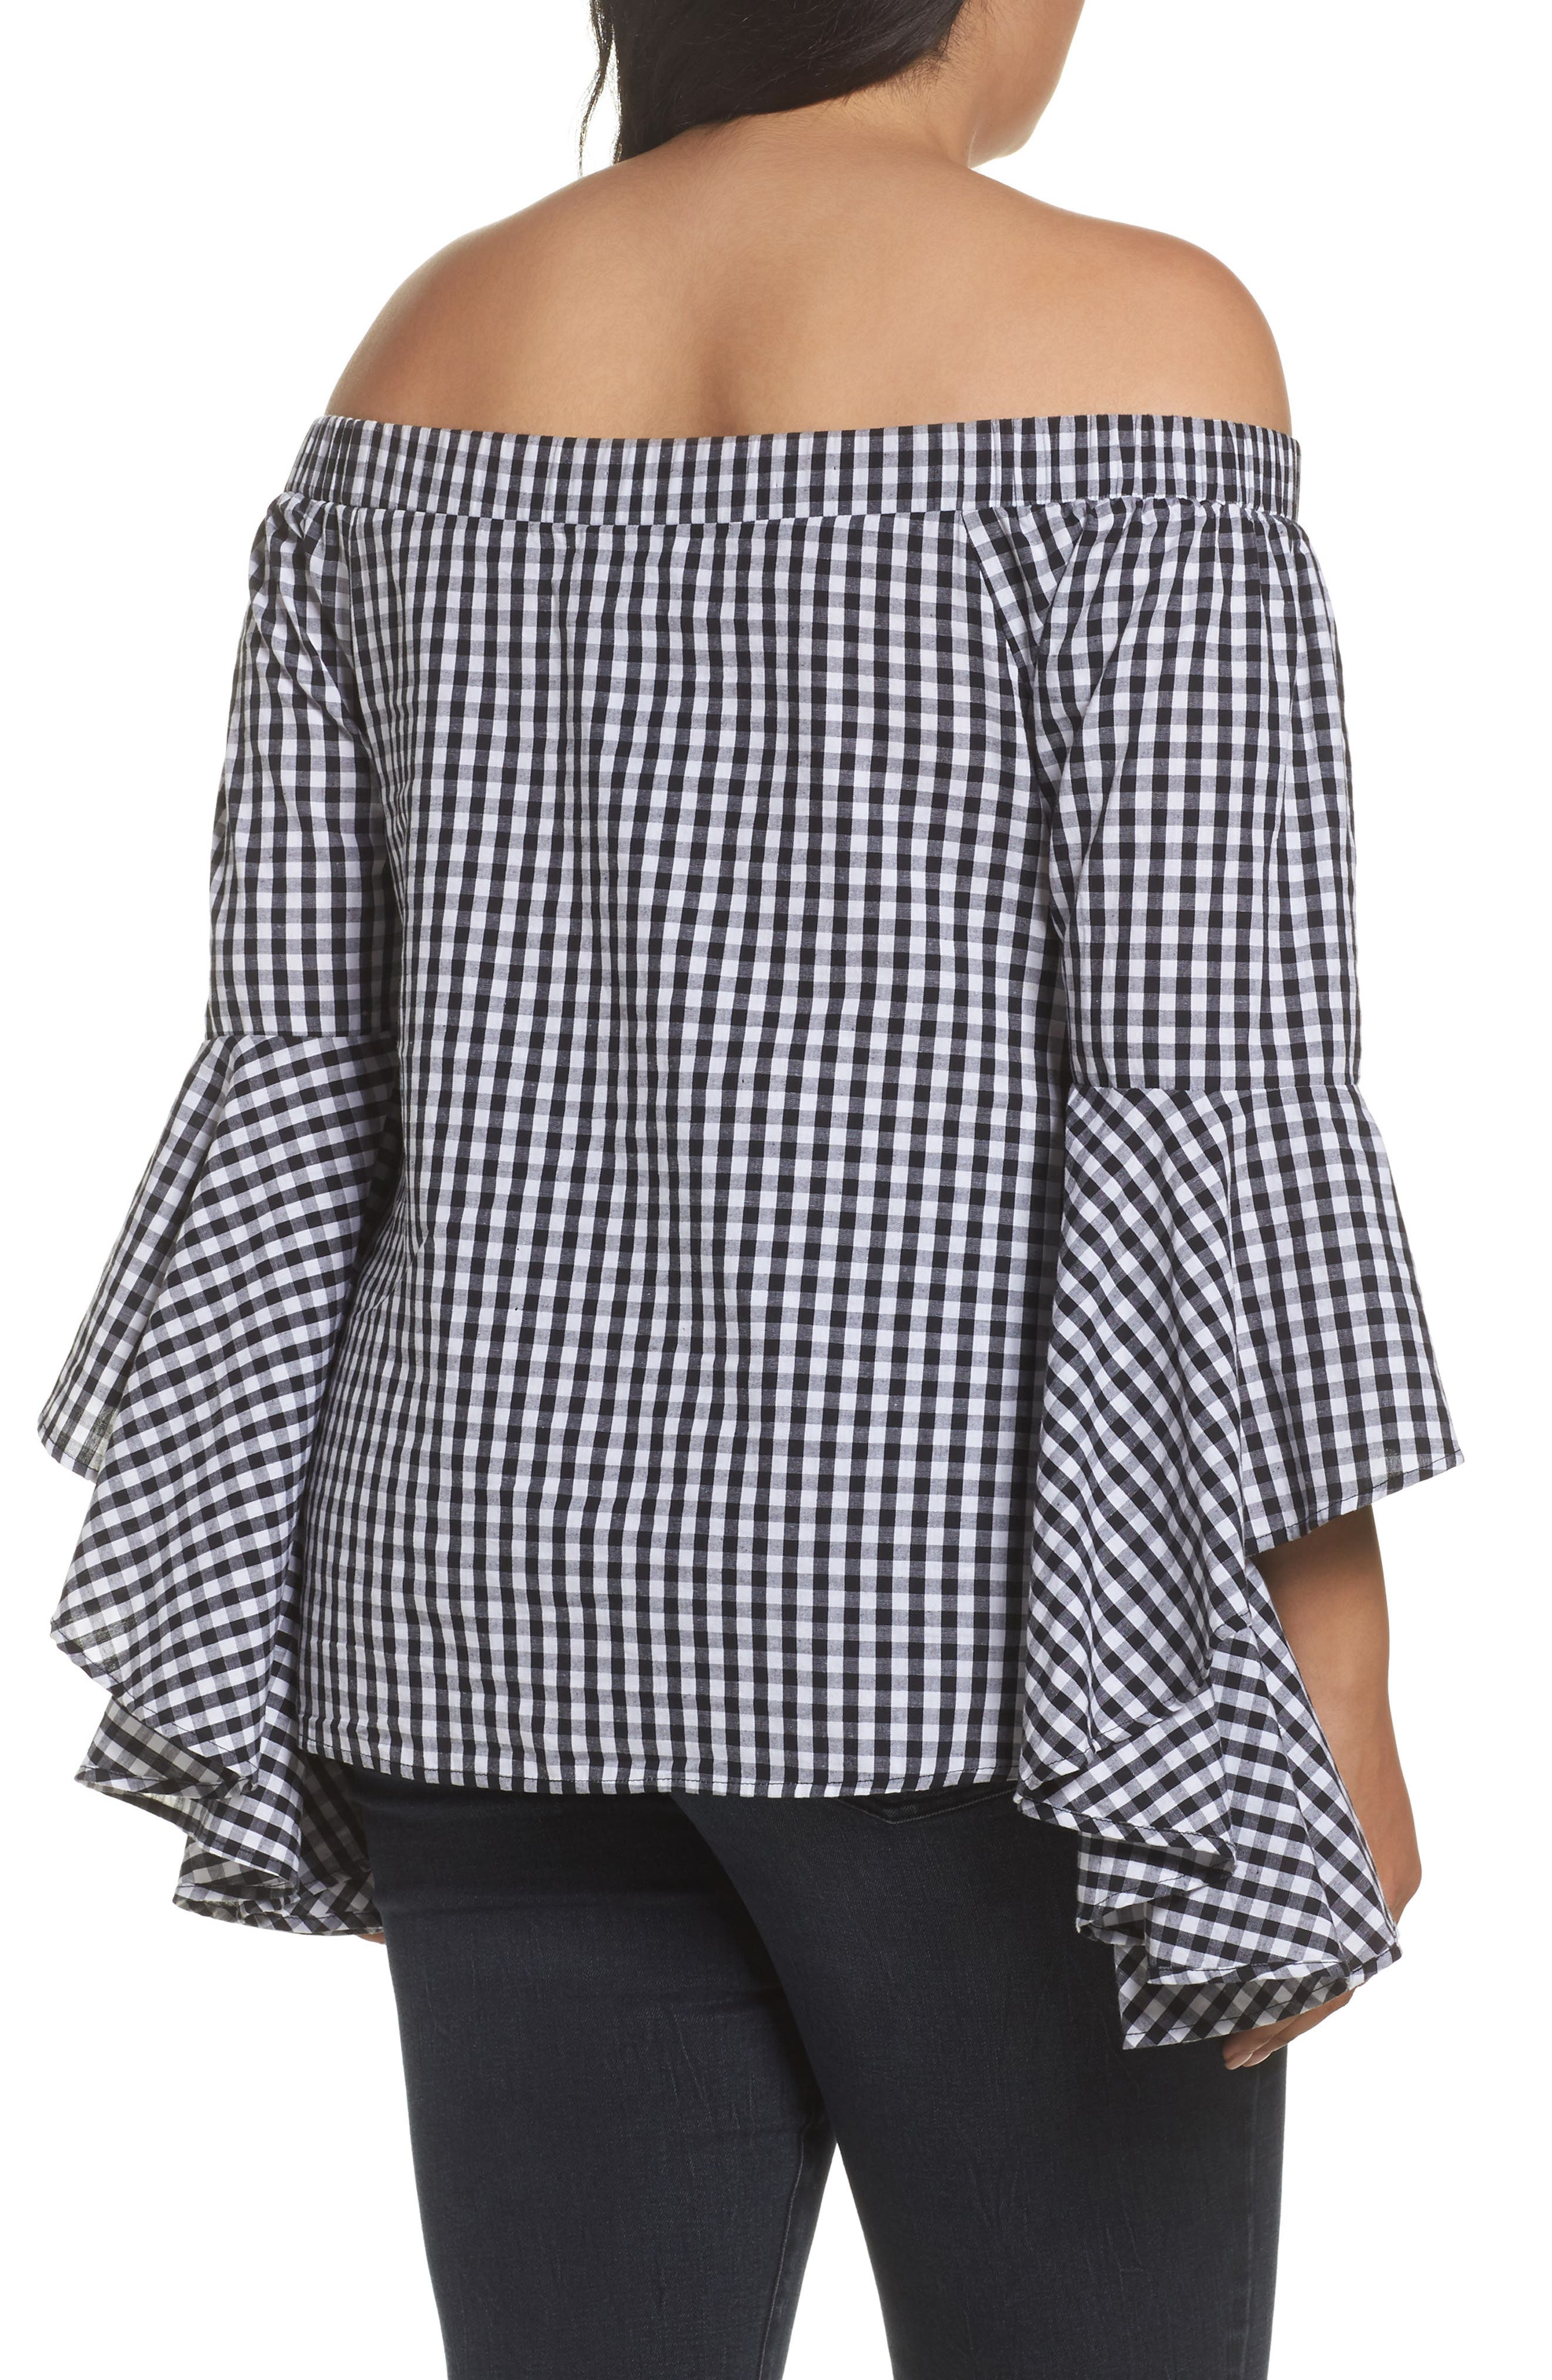 Alternate Image 3  - City Chic Bell Sleeve Off the Shoulder Shirt (Plus Size)